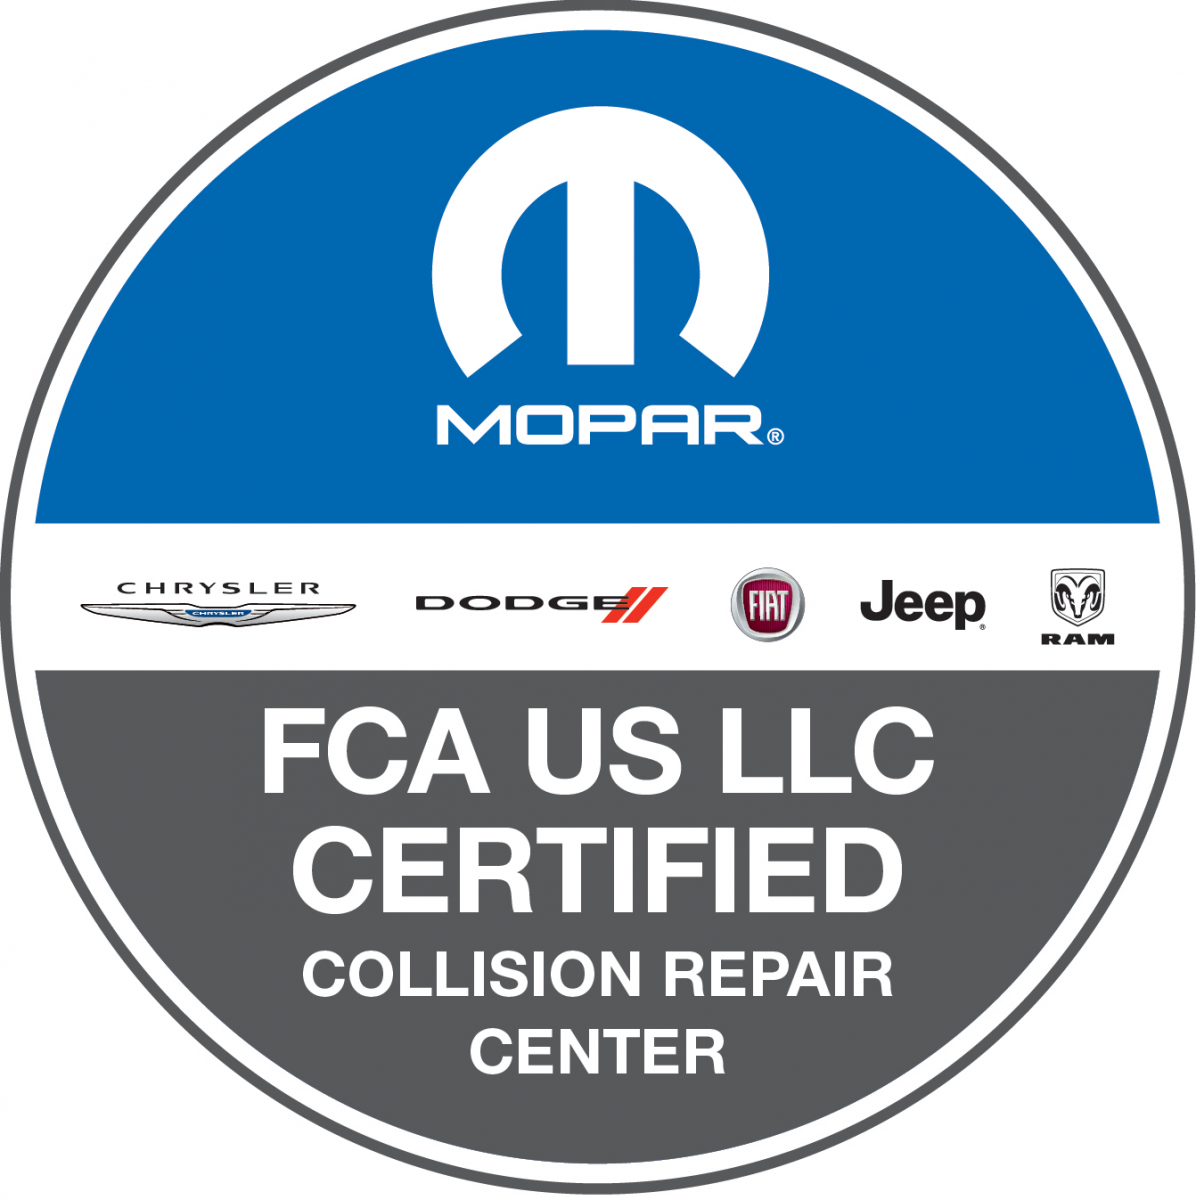 mopar, chrysler, dodge, fiat, jeep, ram, fca, certified collision repair center logo